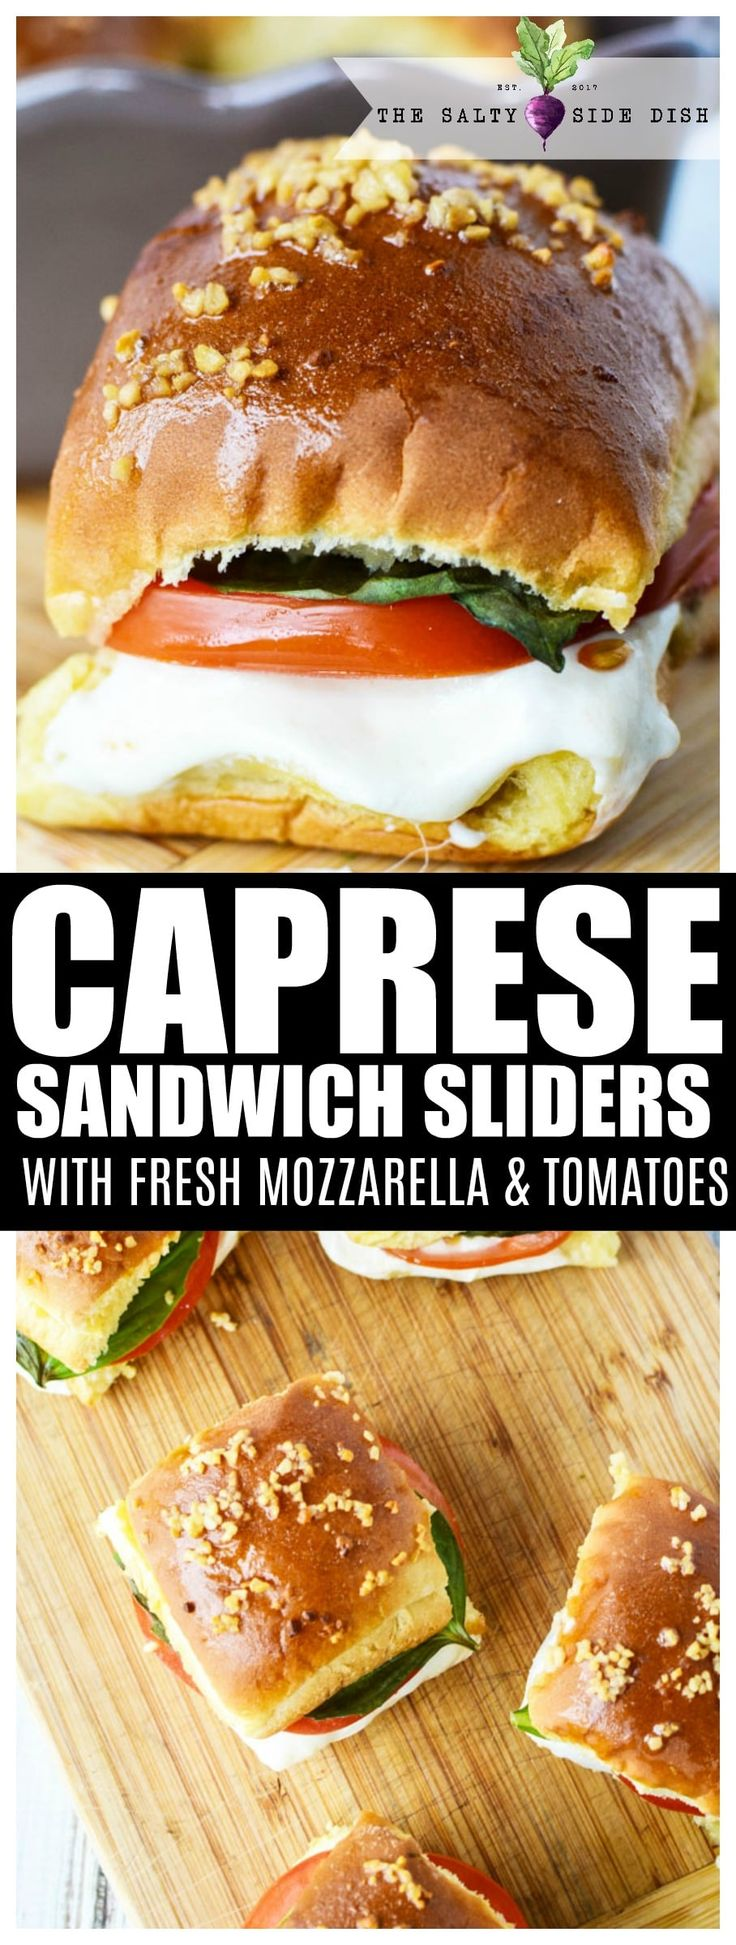 Caprese Sandwich Sliders